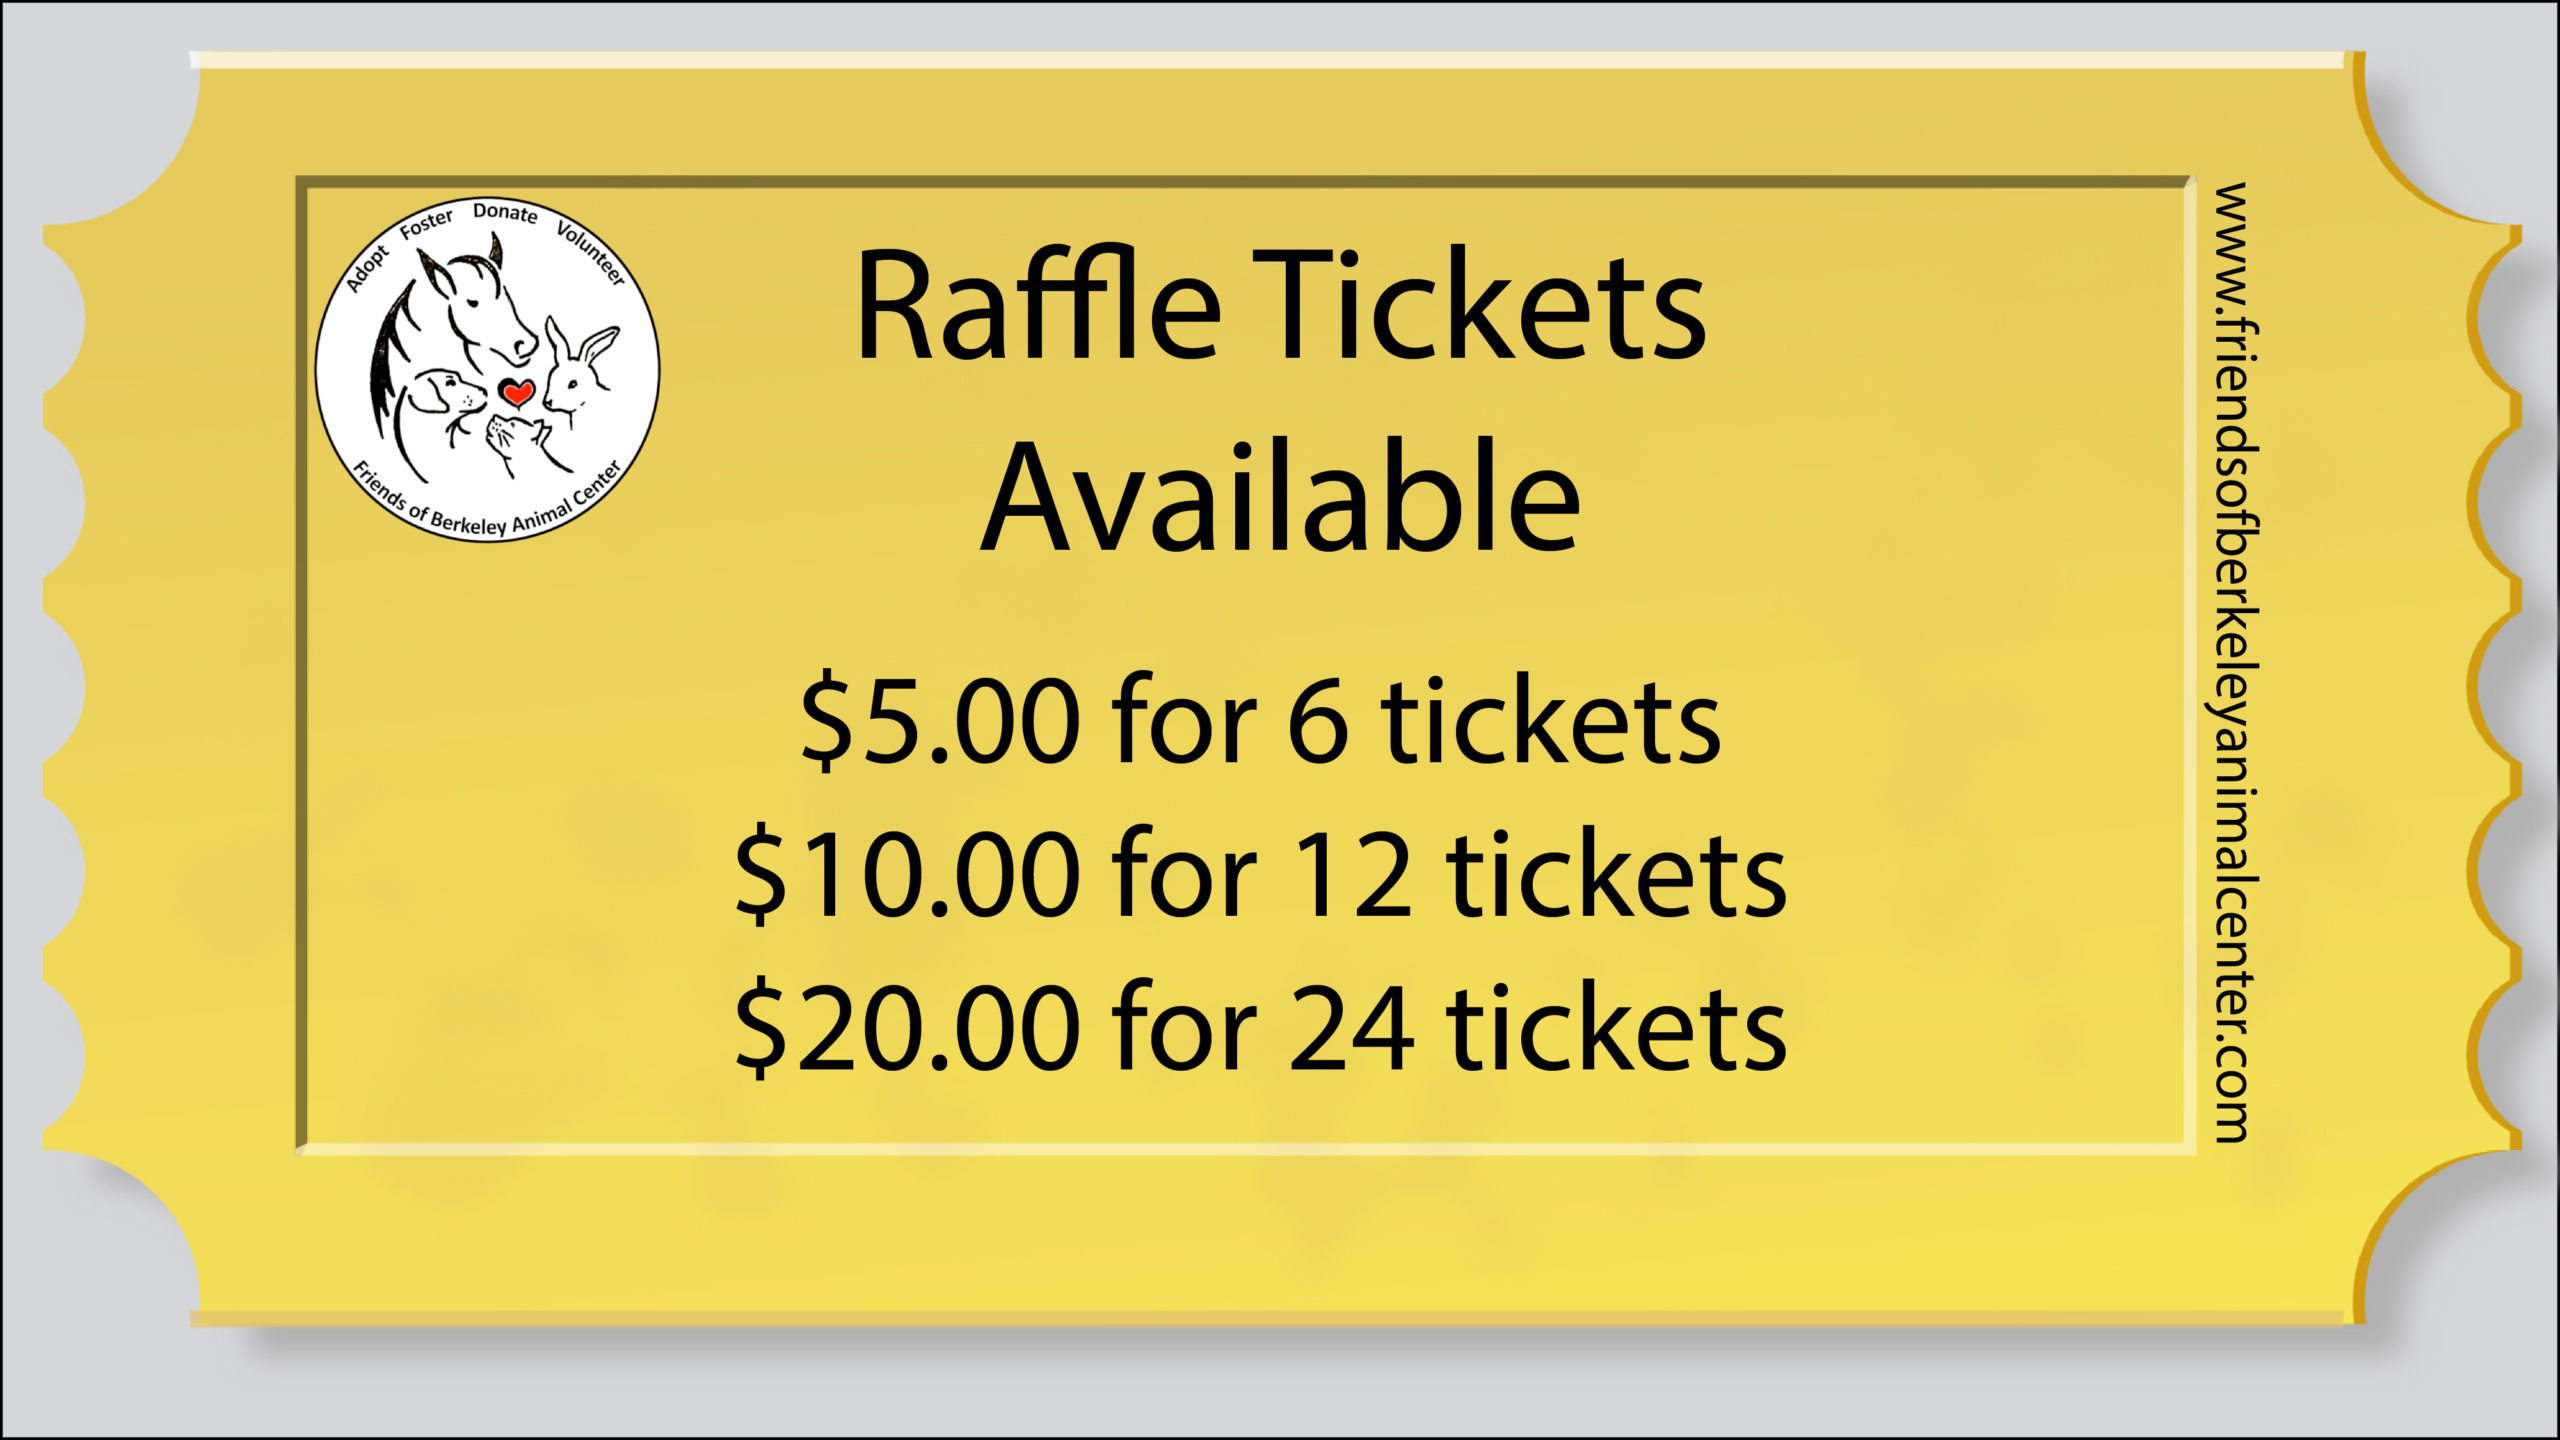 Raffle Tickets Available $5.00 for 6 tickets, $10.00 for 12 tickets, $20.00 for 24 tickets